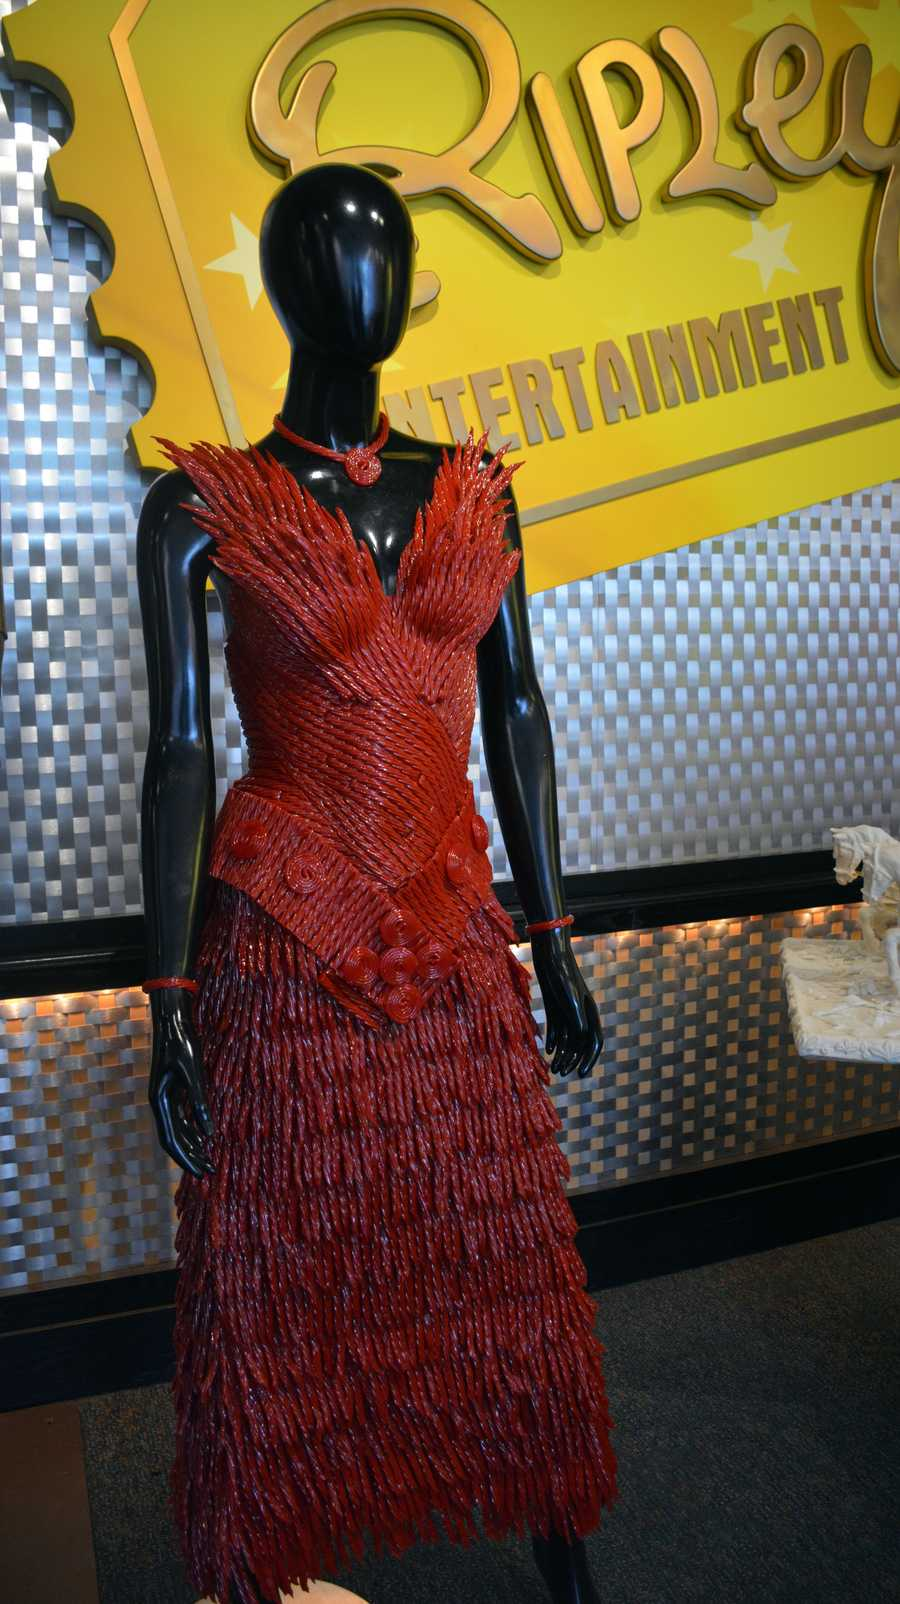 Dress made from red licorice